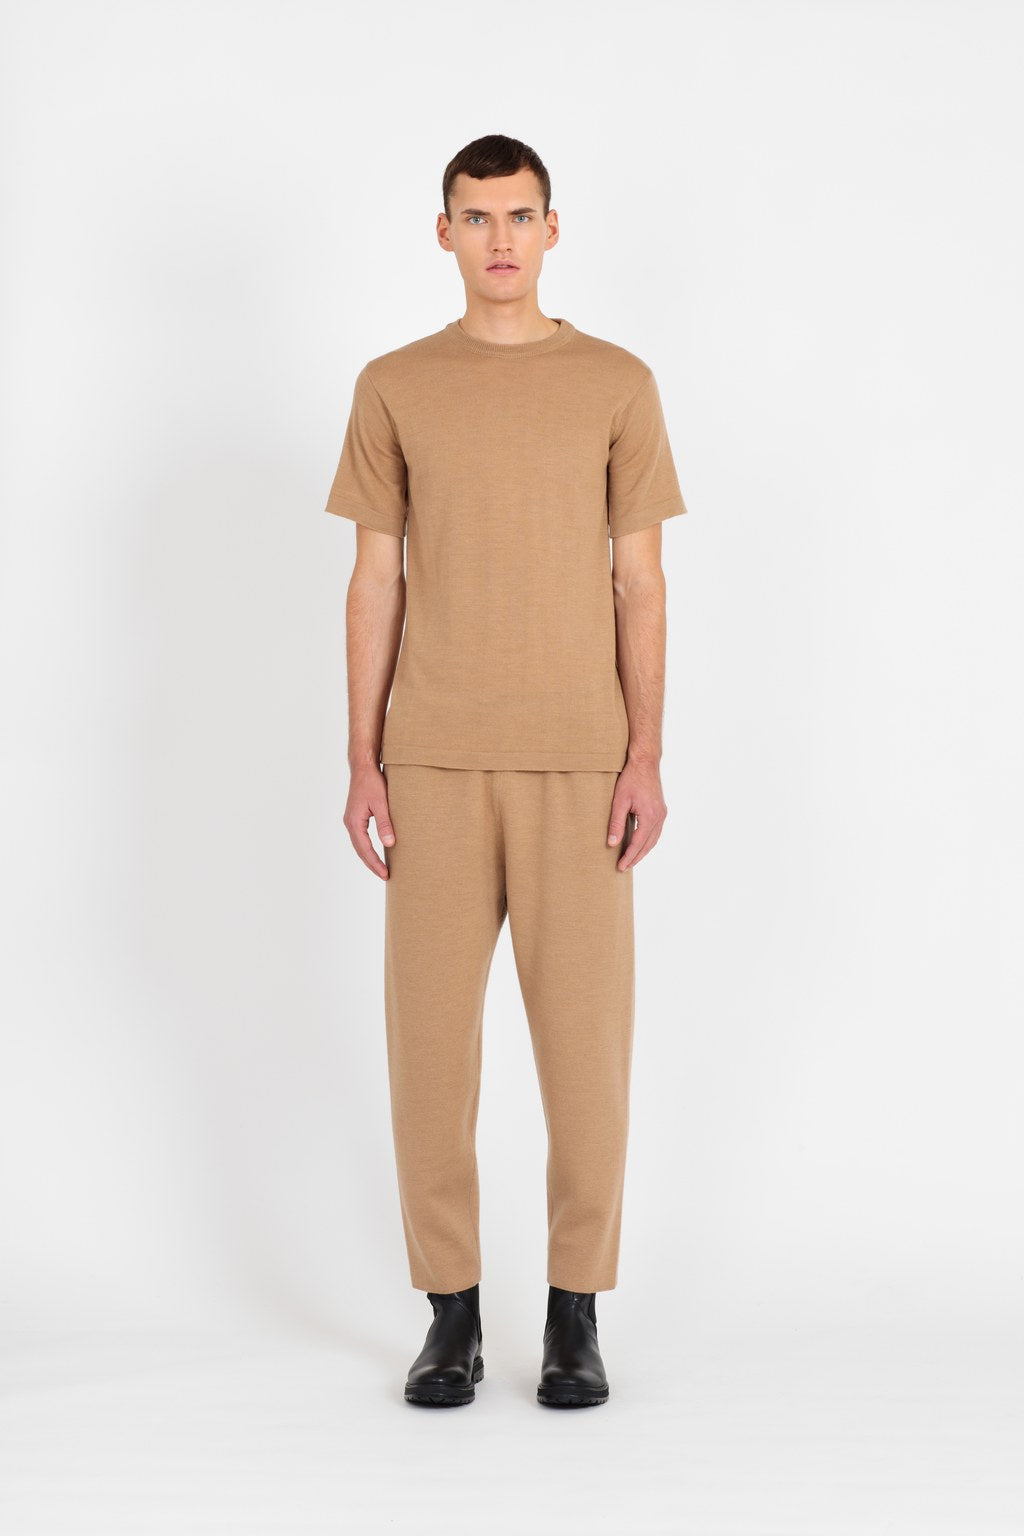 Mathis merino t-shirt in beige